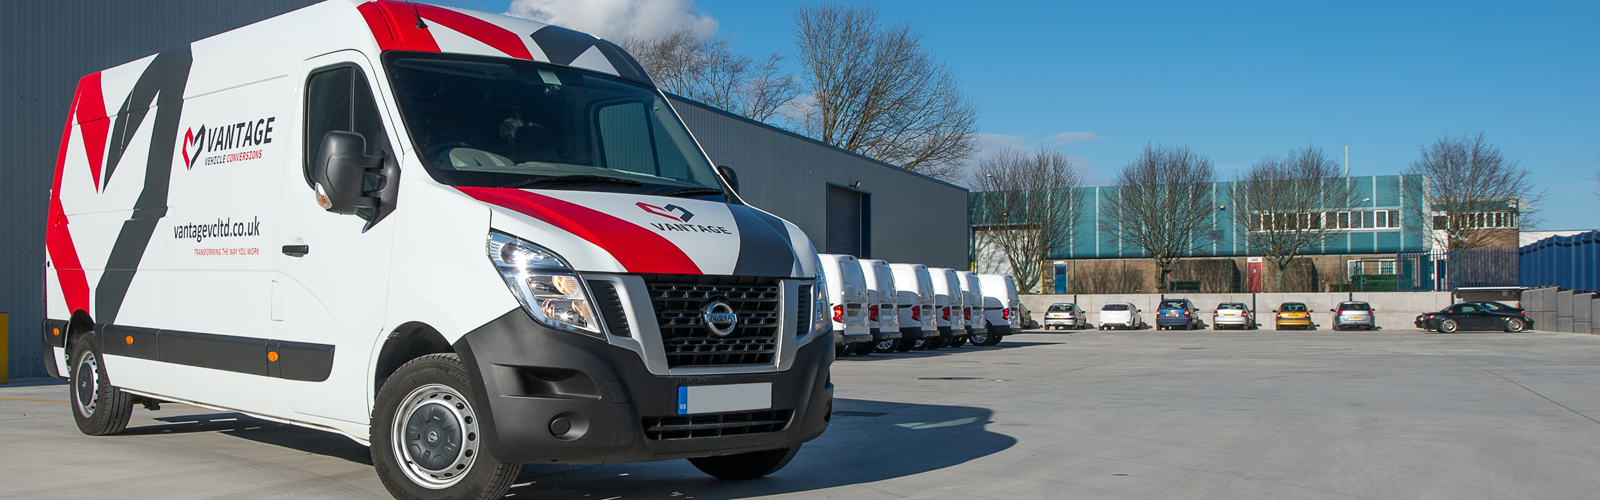 Shropshire-based Vantage Vehicle Conversions specialist in the transformation of vans. Call 01952 680433 to discuss your one off, or major fleet project.